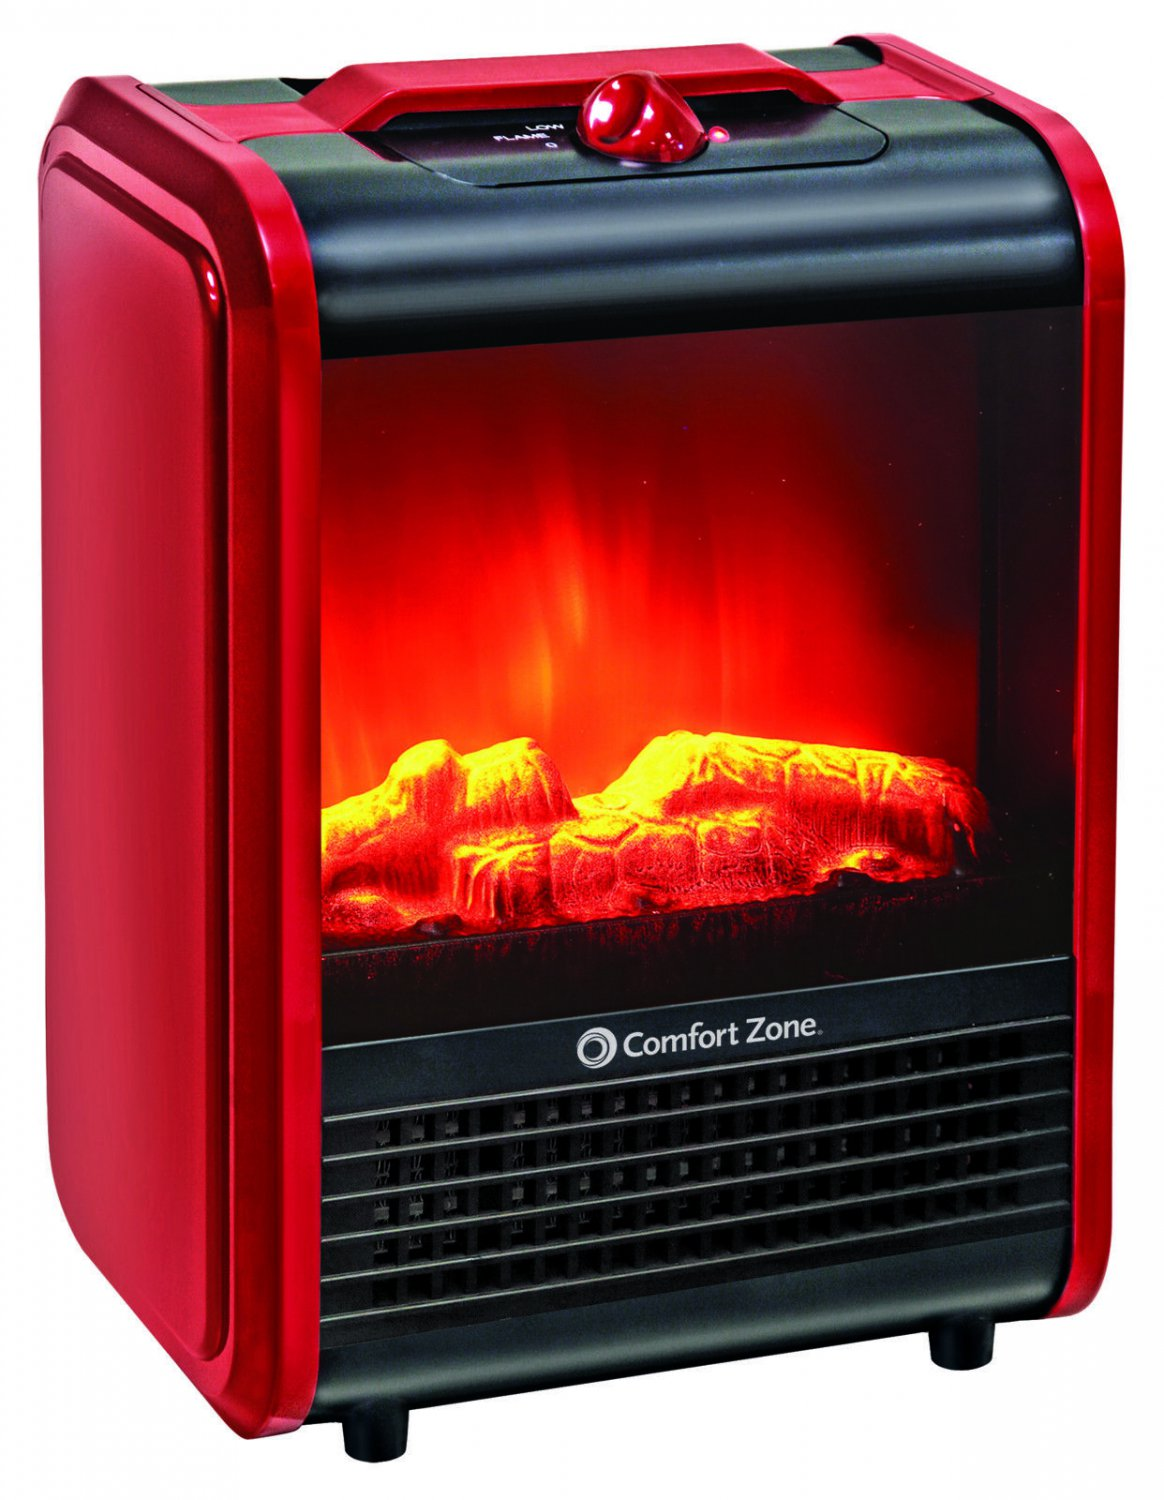 Comfort Zone Mini Electric Fireplace Space Heater, Red office or porch